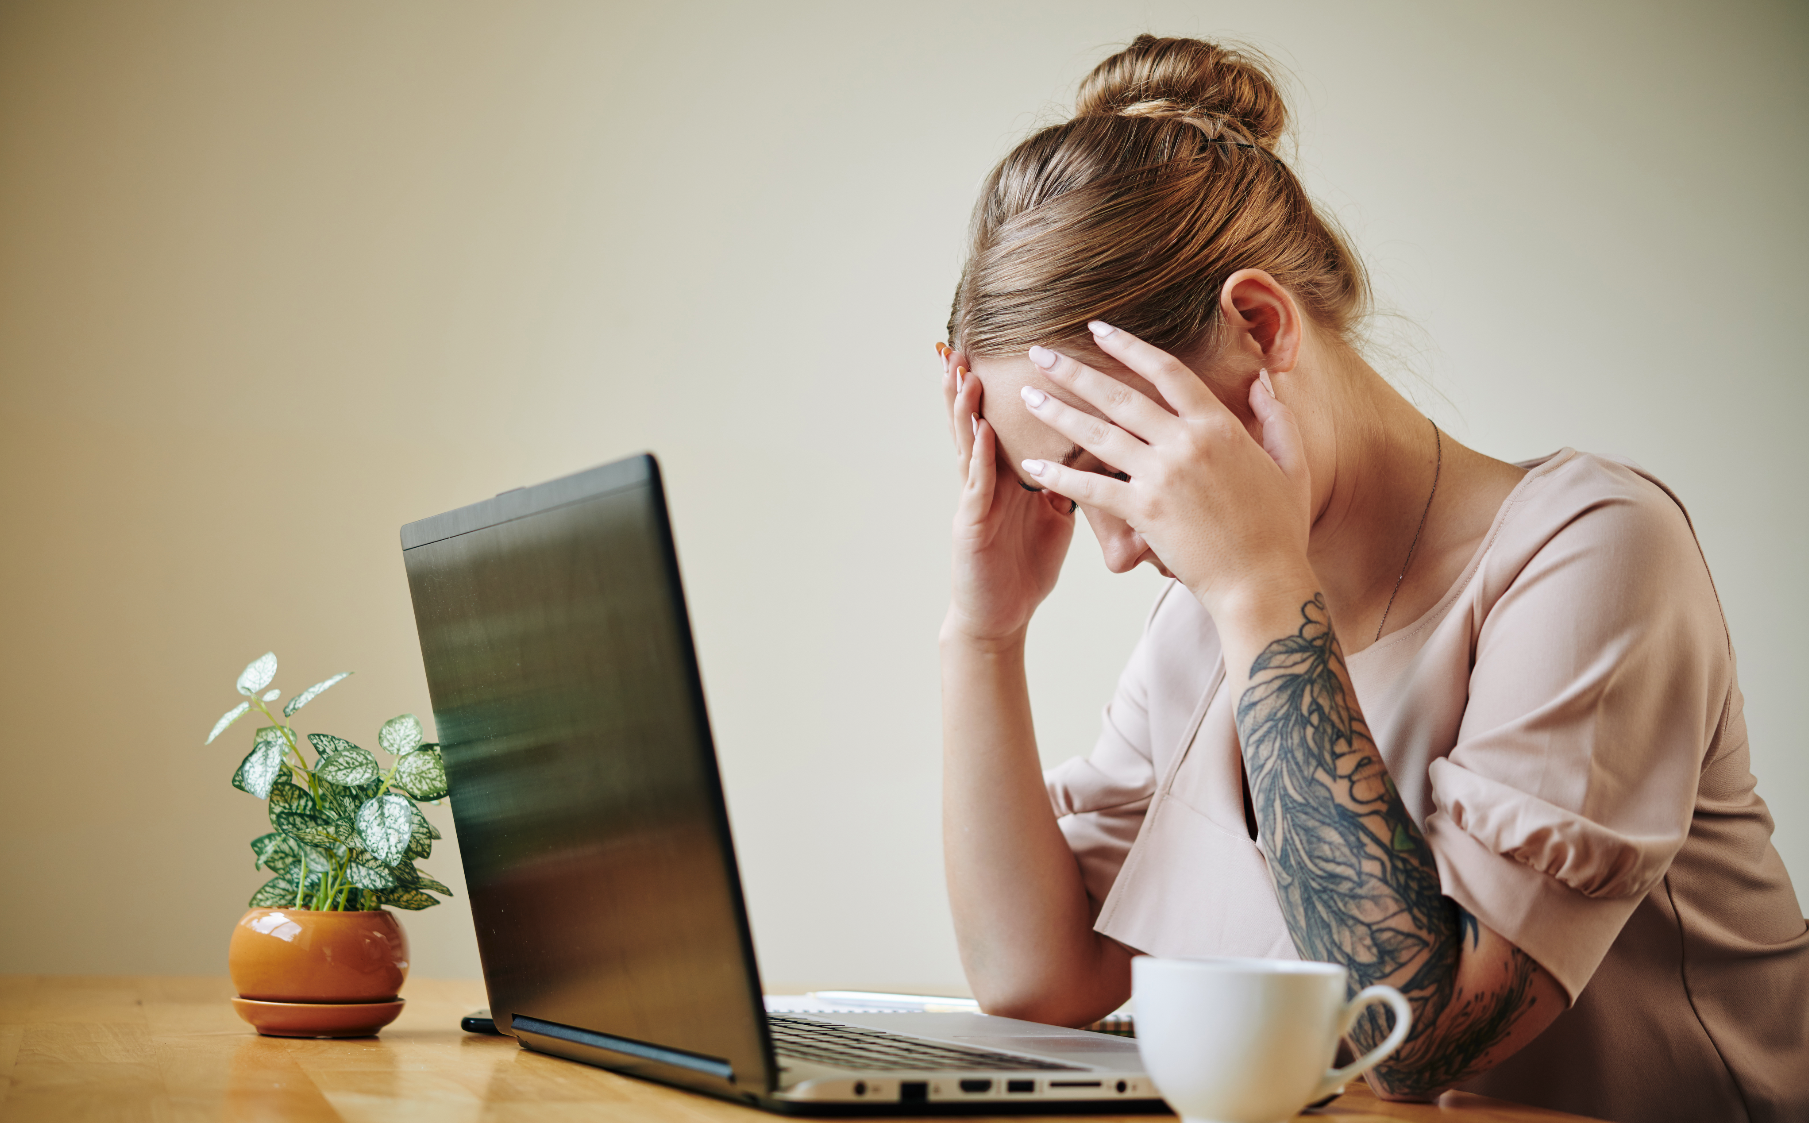 Learn how much employee burnout costs